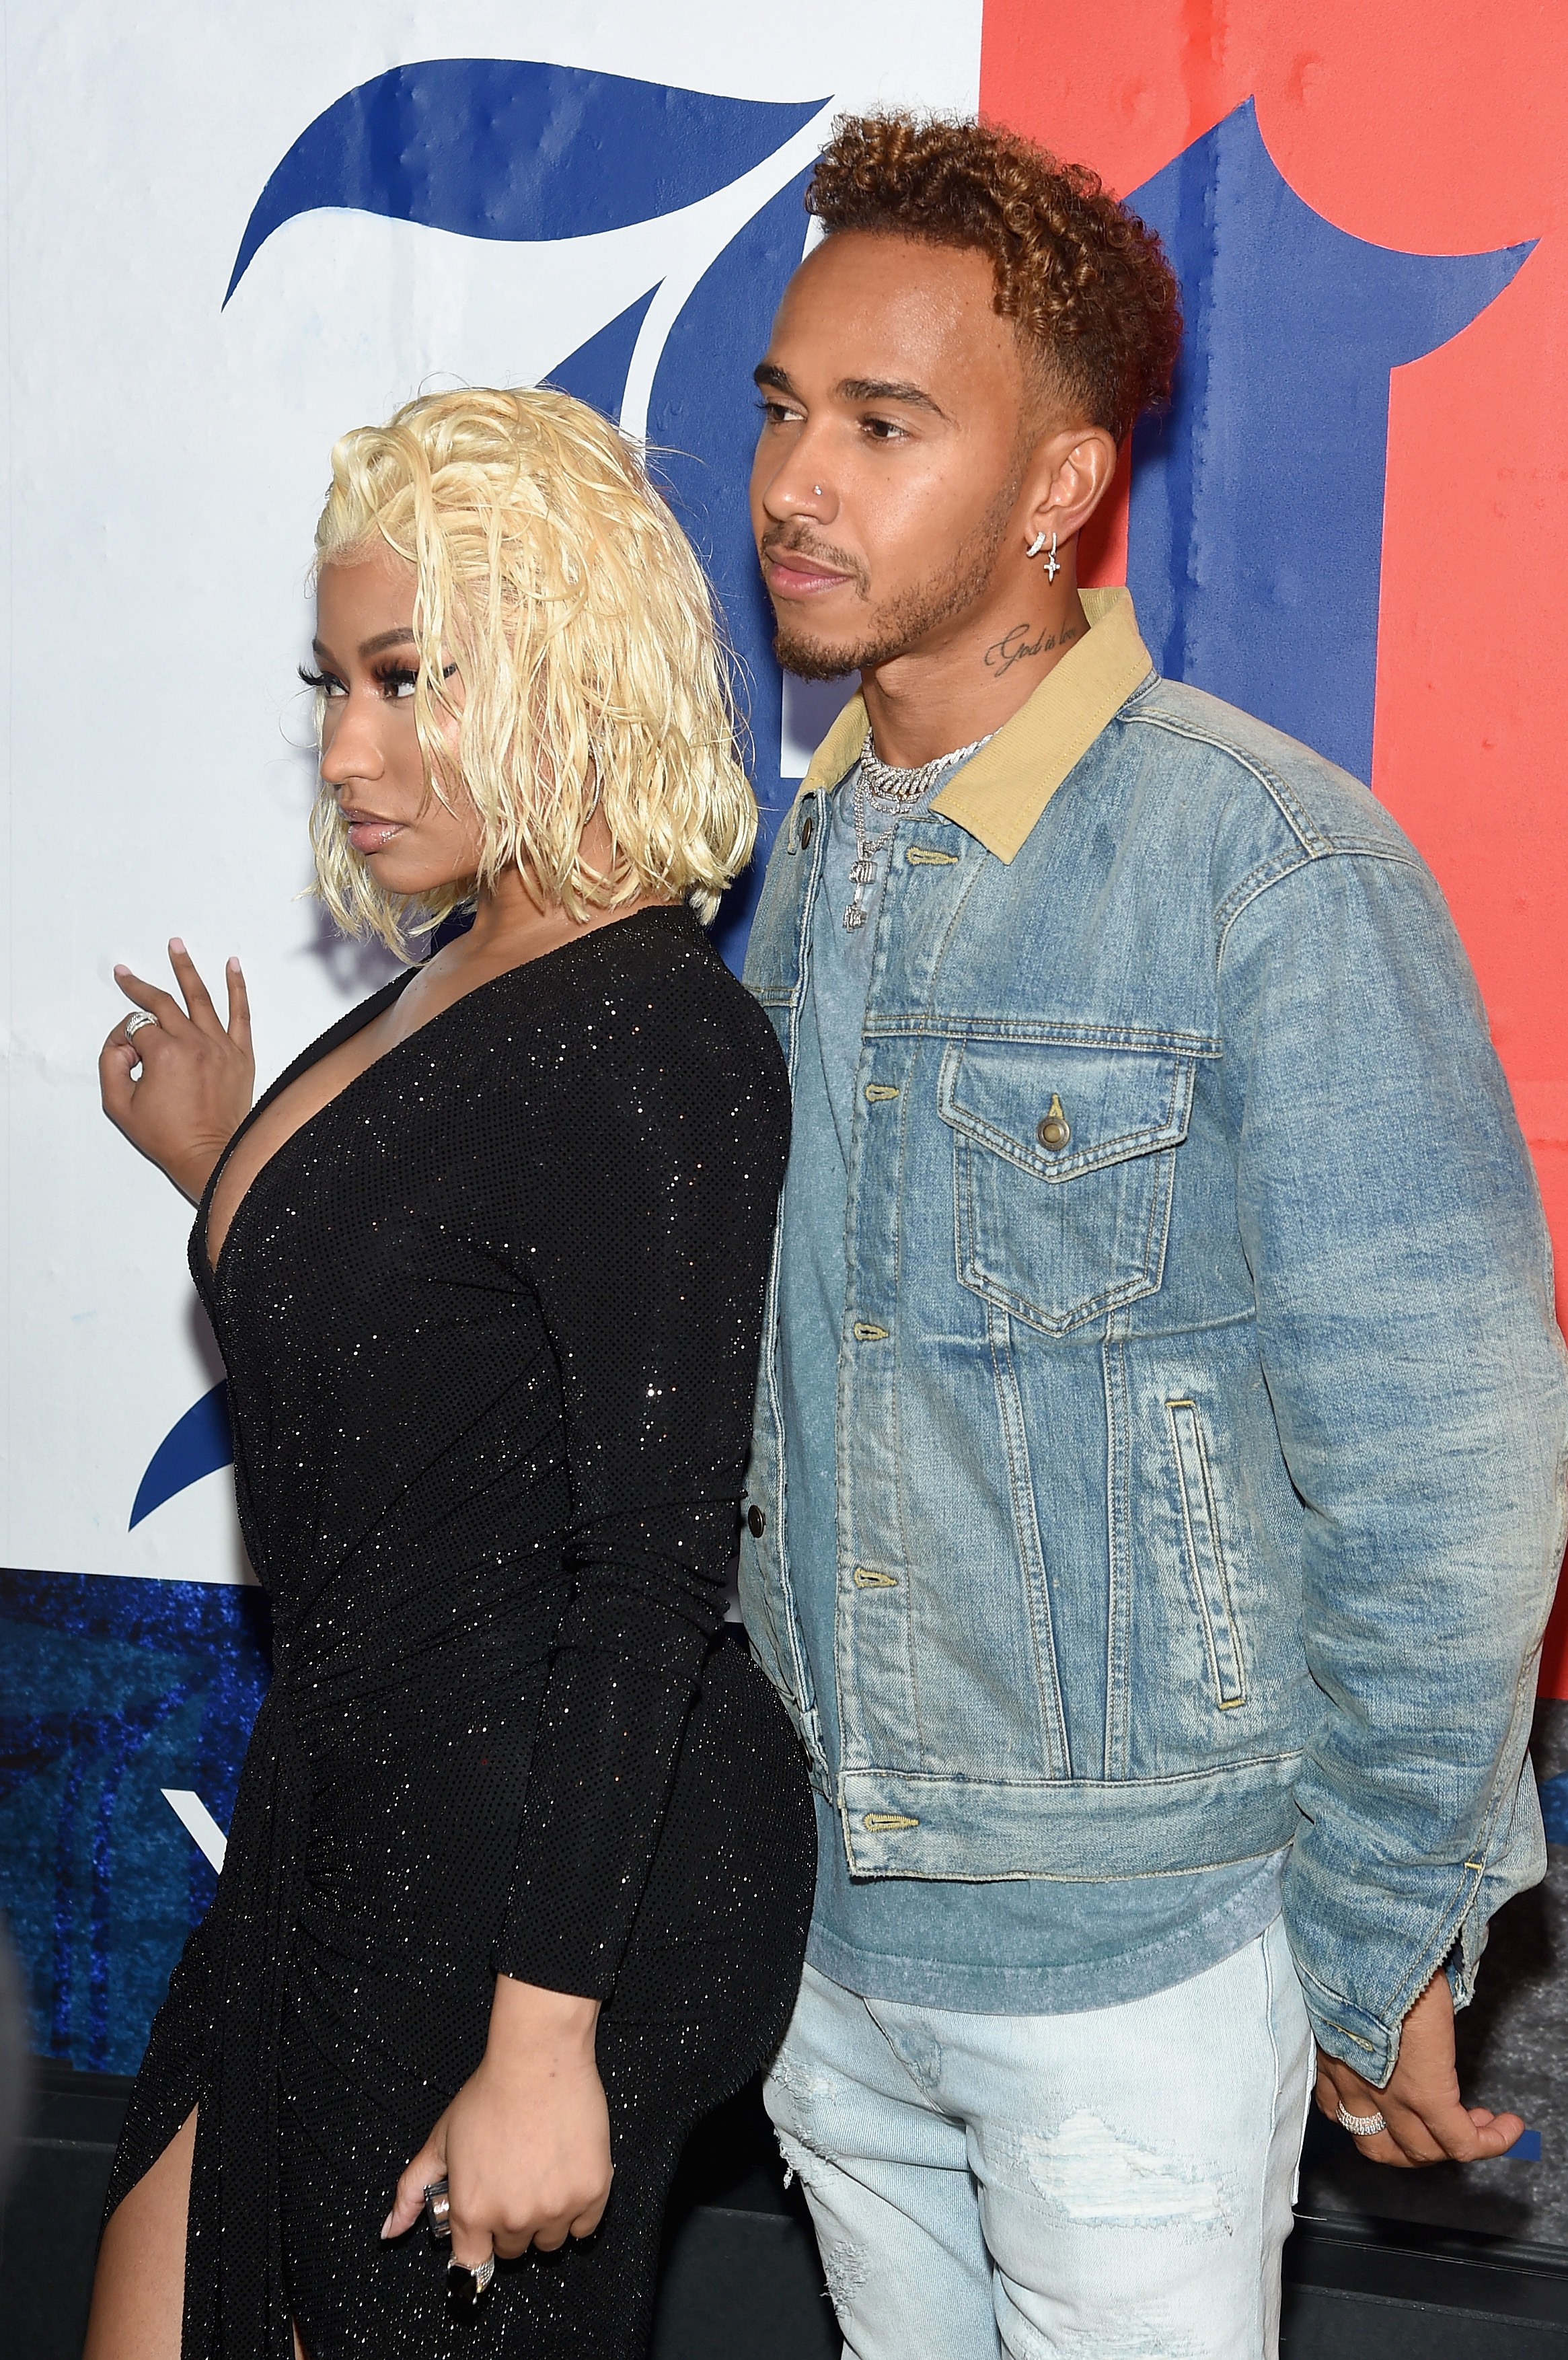 Nicki Minaj e Lewis Hamilton em evento de moda em Nova York (Foto: Getty Images)